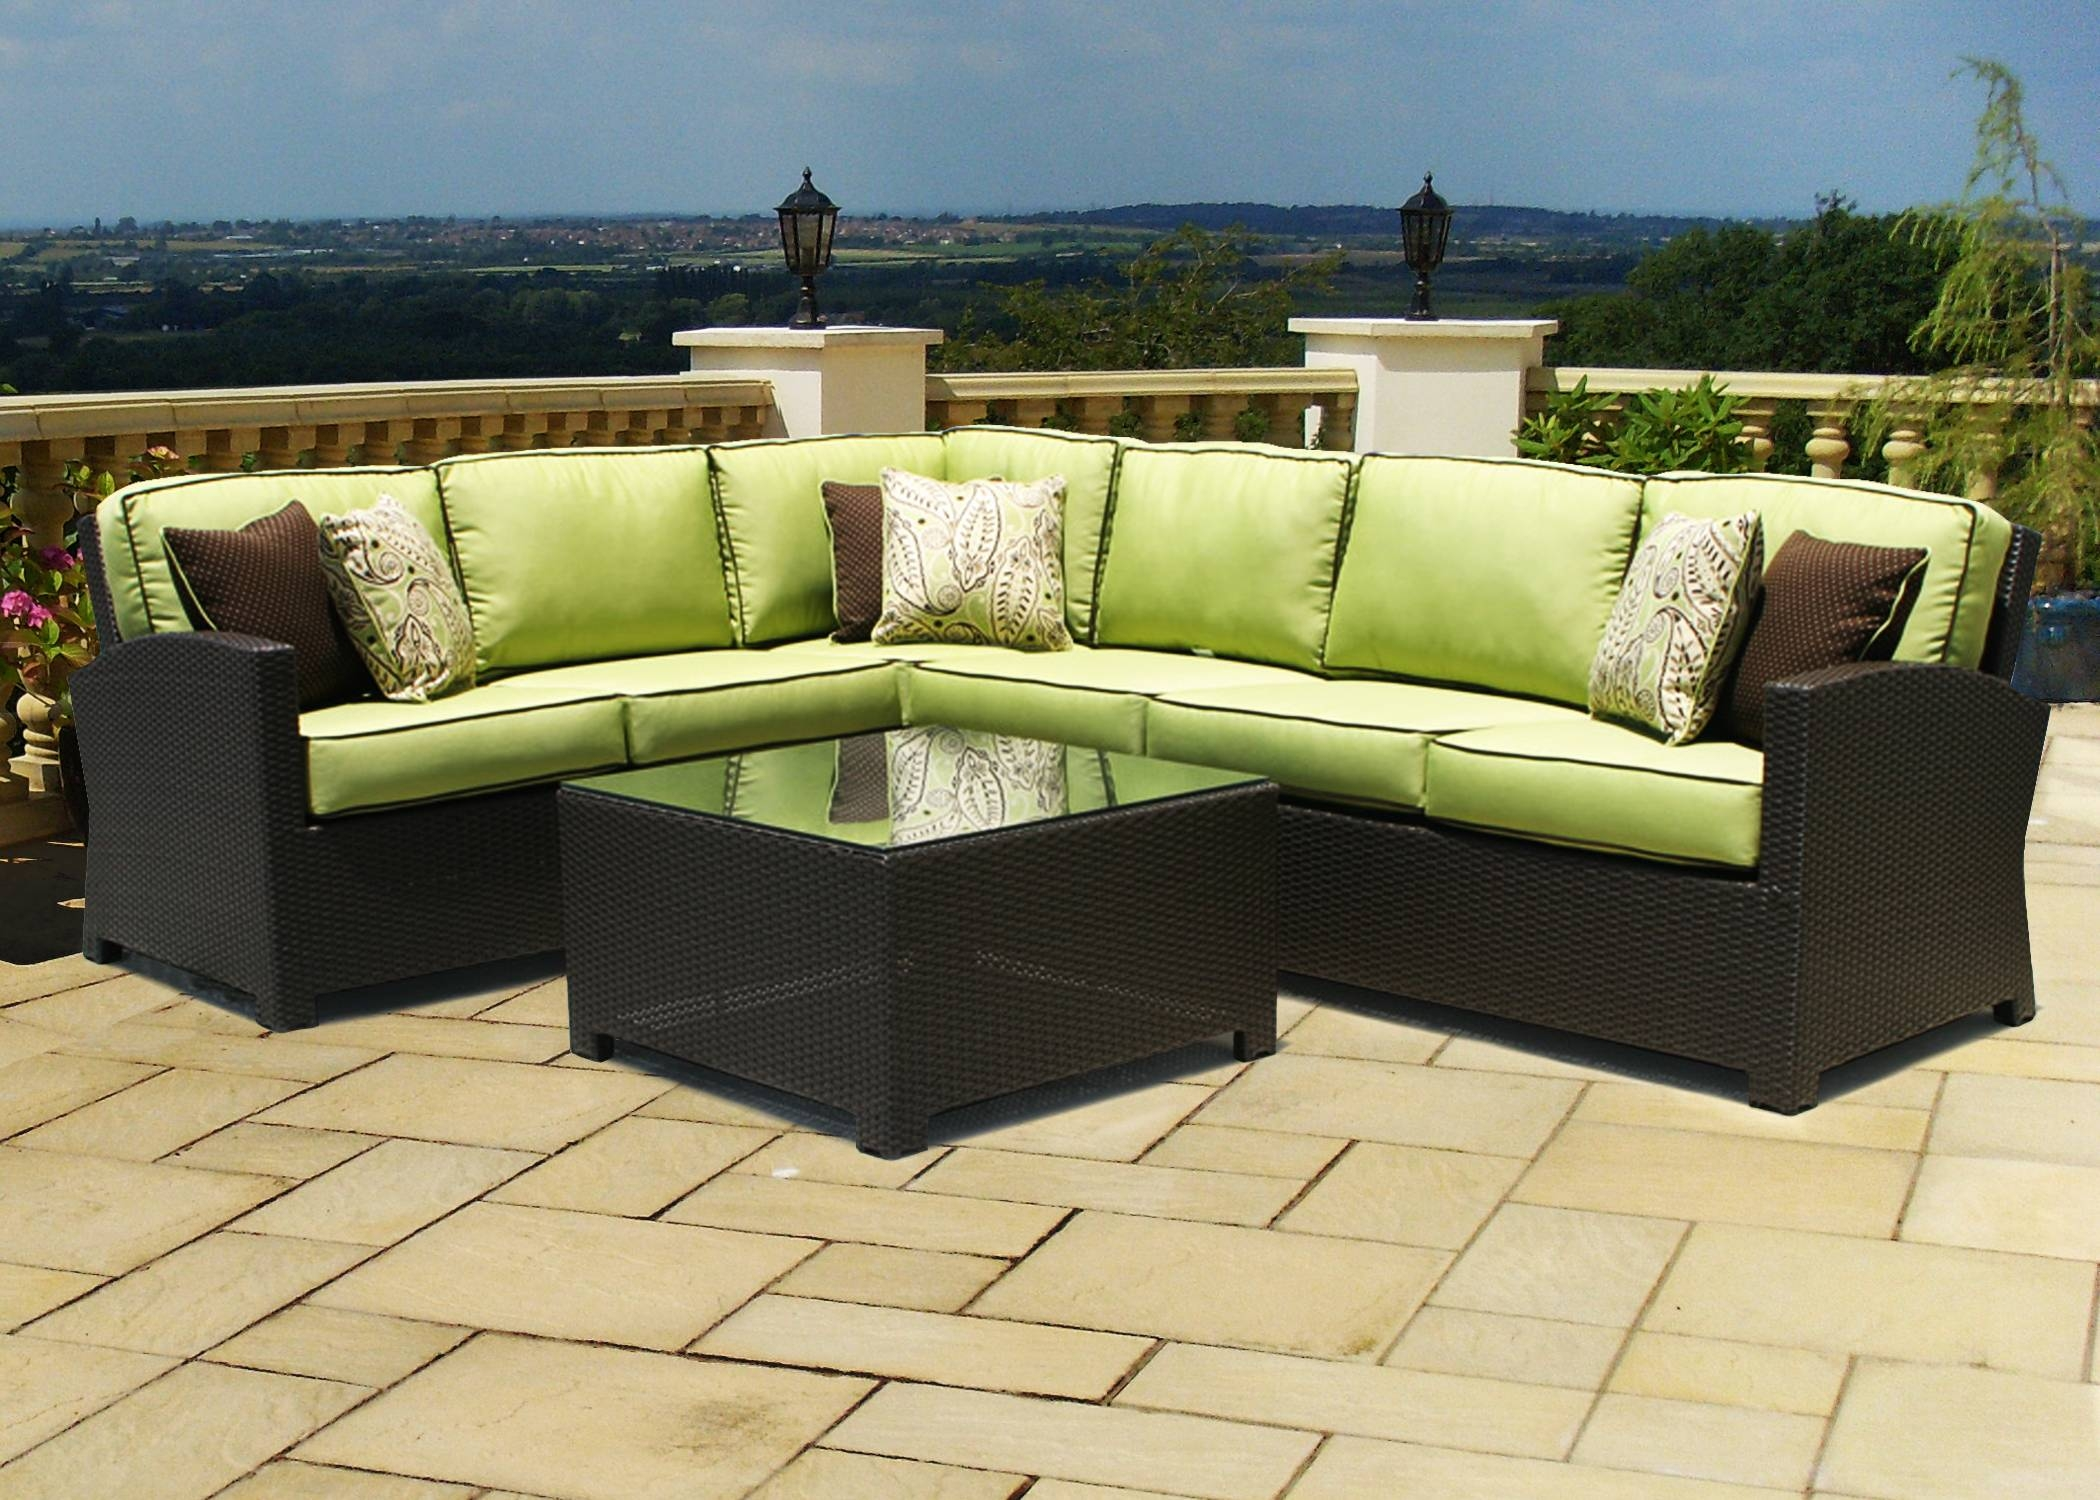 Black Wicker Sectional Patio Furniture | Patio Decoration intended for Modern Rattan Sofas (Image 7 of 30)